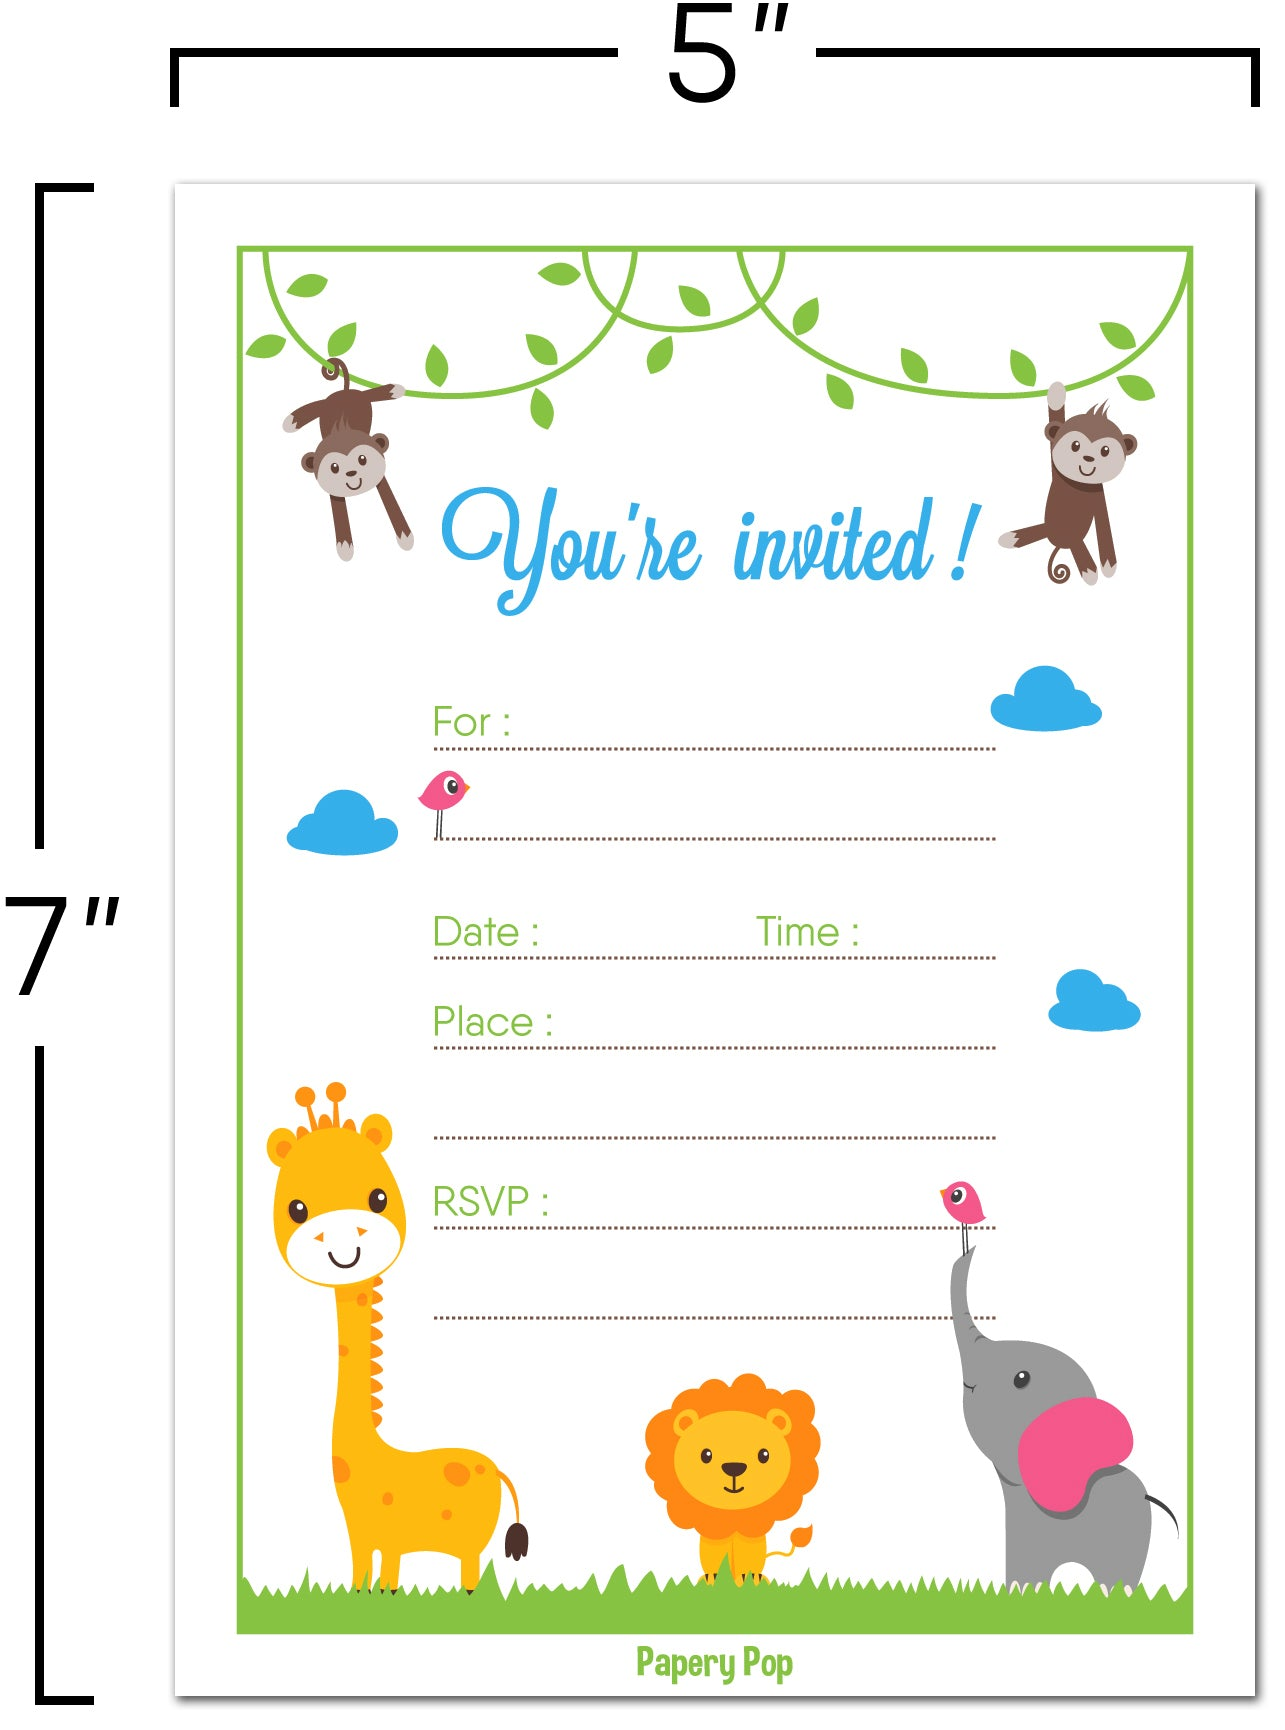 30 Invitations with Envelopes - Any Occasions - Safari Jungle Zoo ...